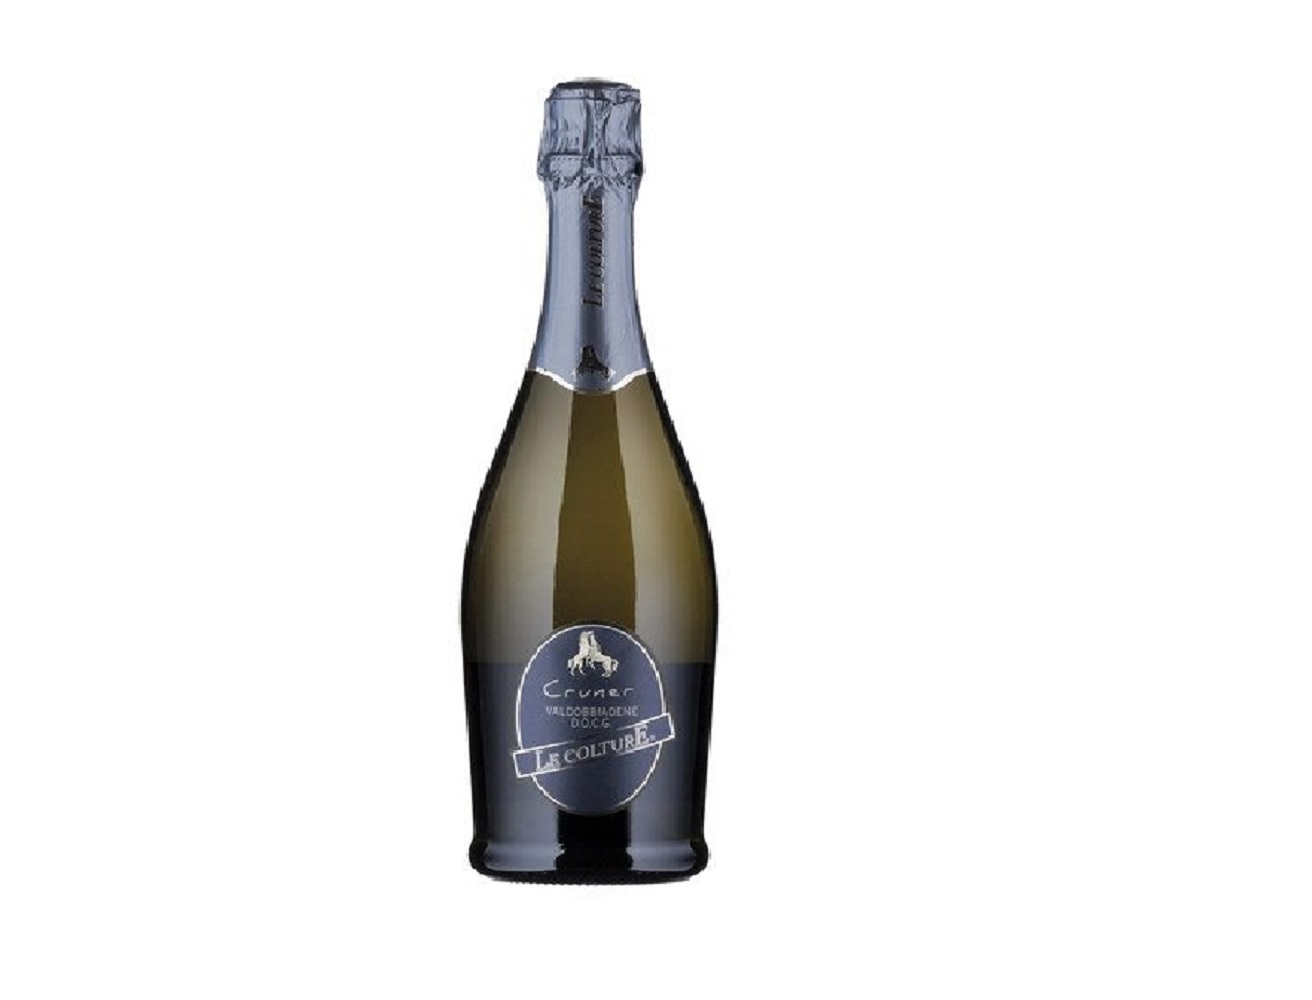 Cruner Prosecco dry Docg   Le Colture   Cl 75